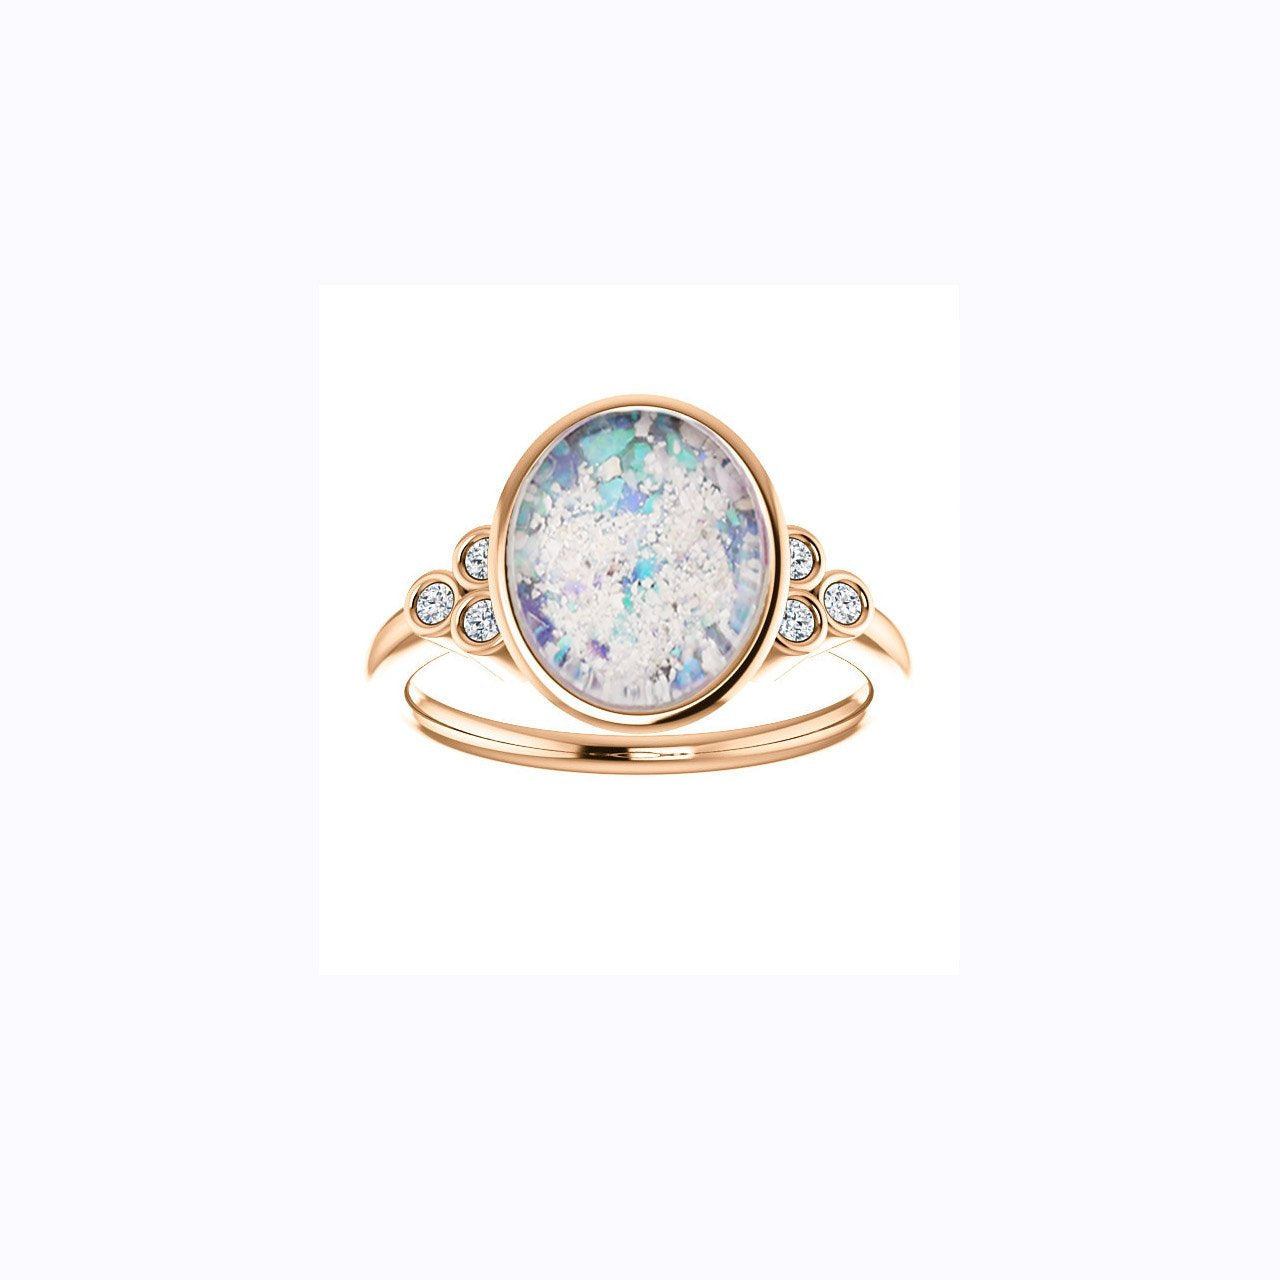 8x10mm Oval Opal Cremation Ring - 10k Rose Gold and Diamond Ring - Cremation Jewelry - Ash Ring - Ash Jewelry - Urn Ring - Pet Loss